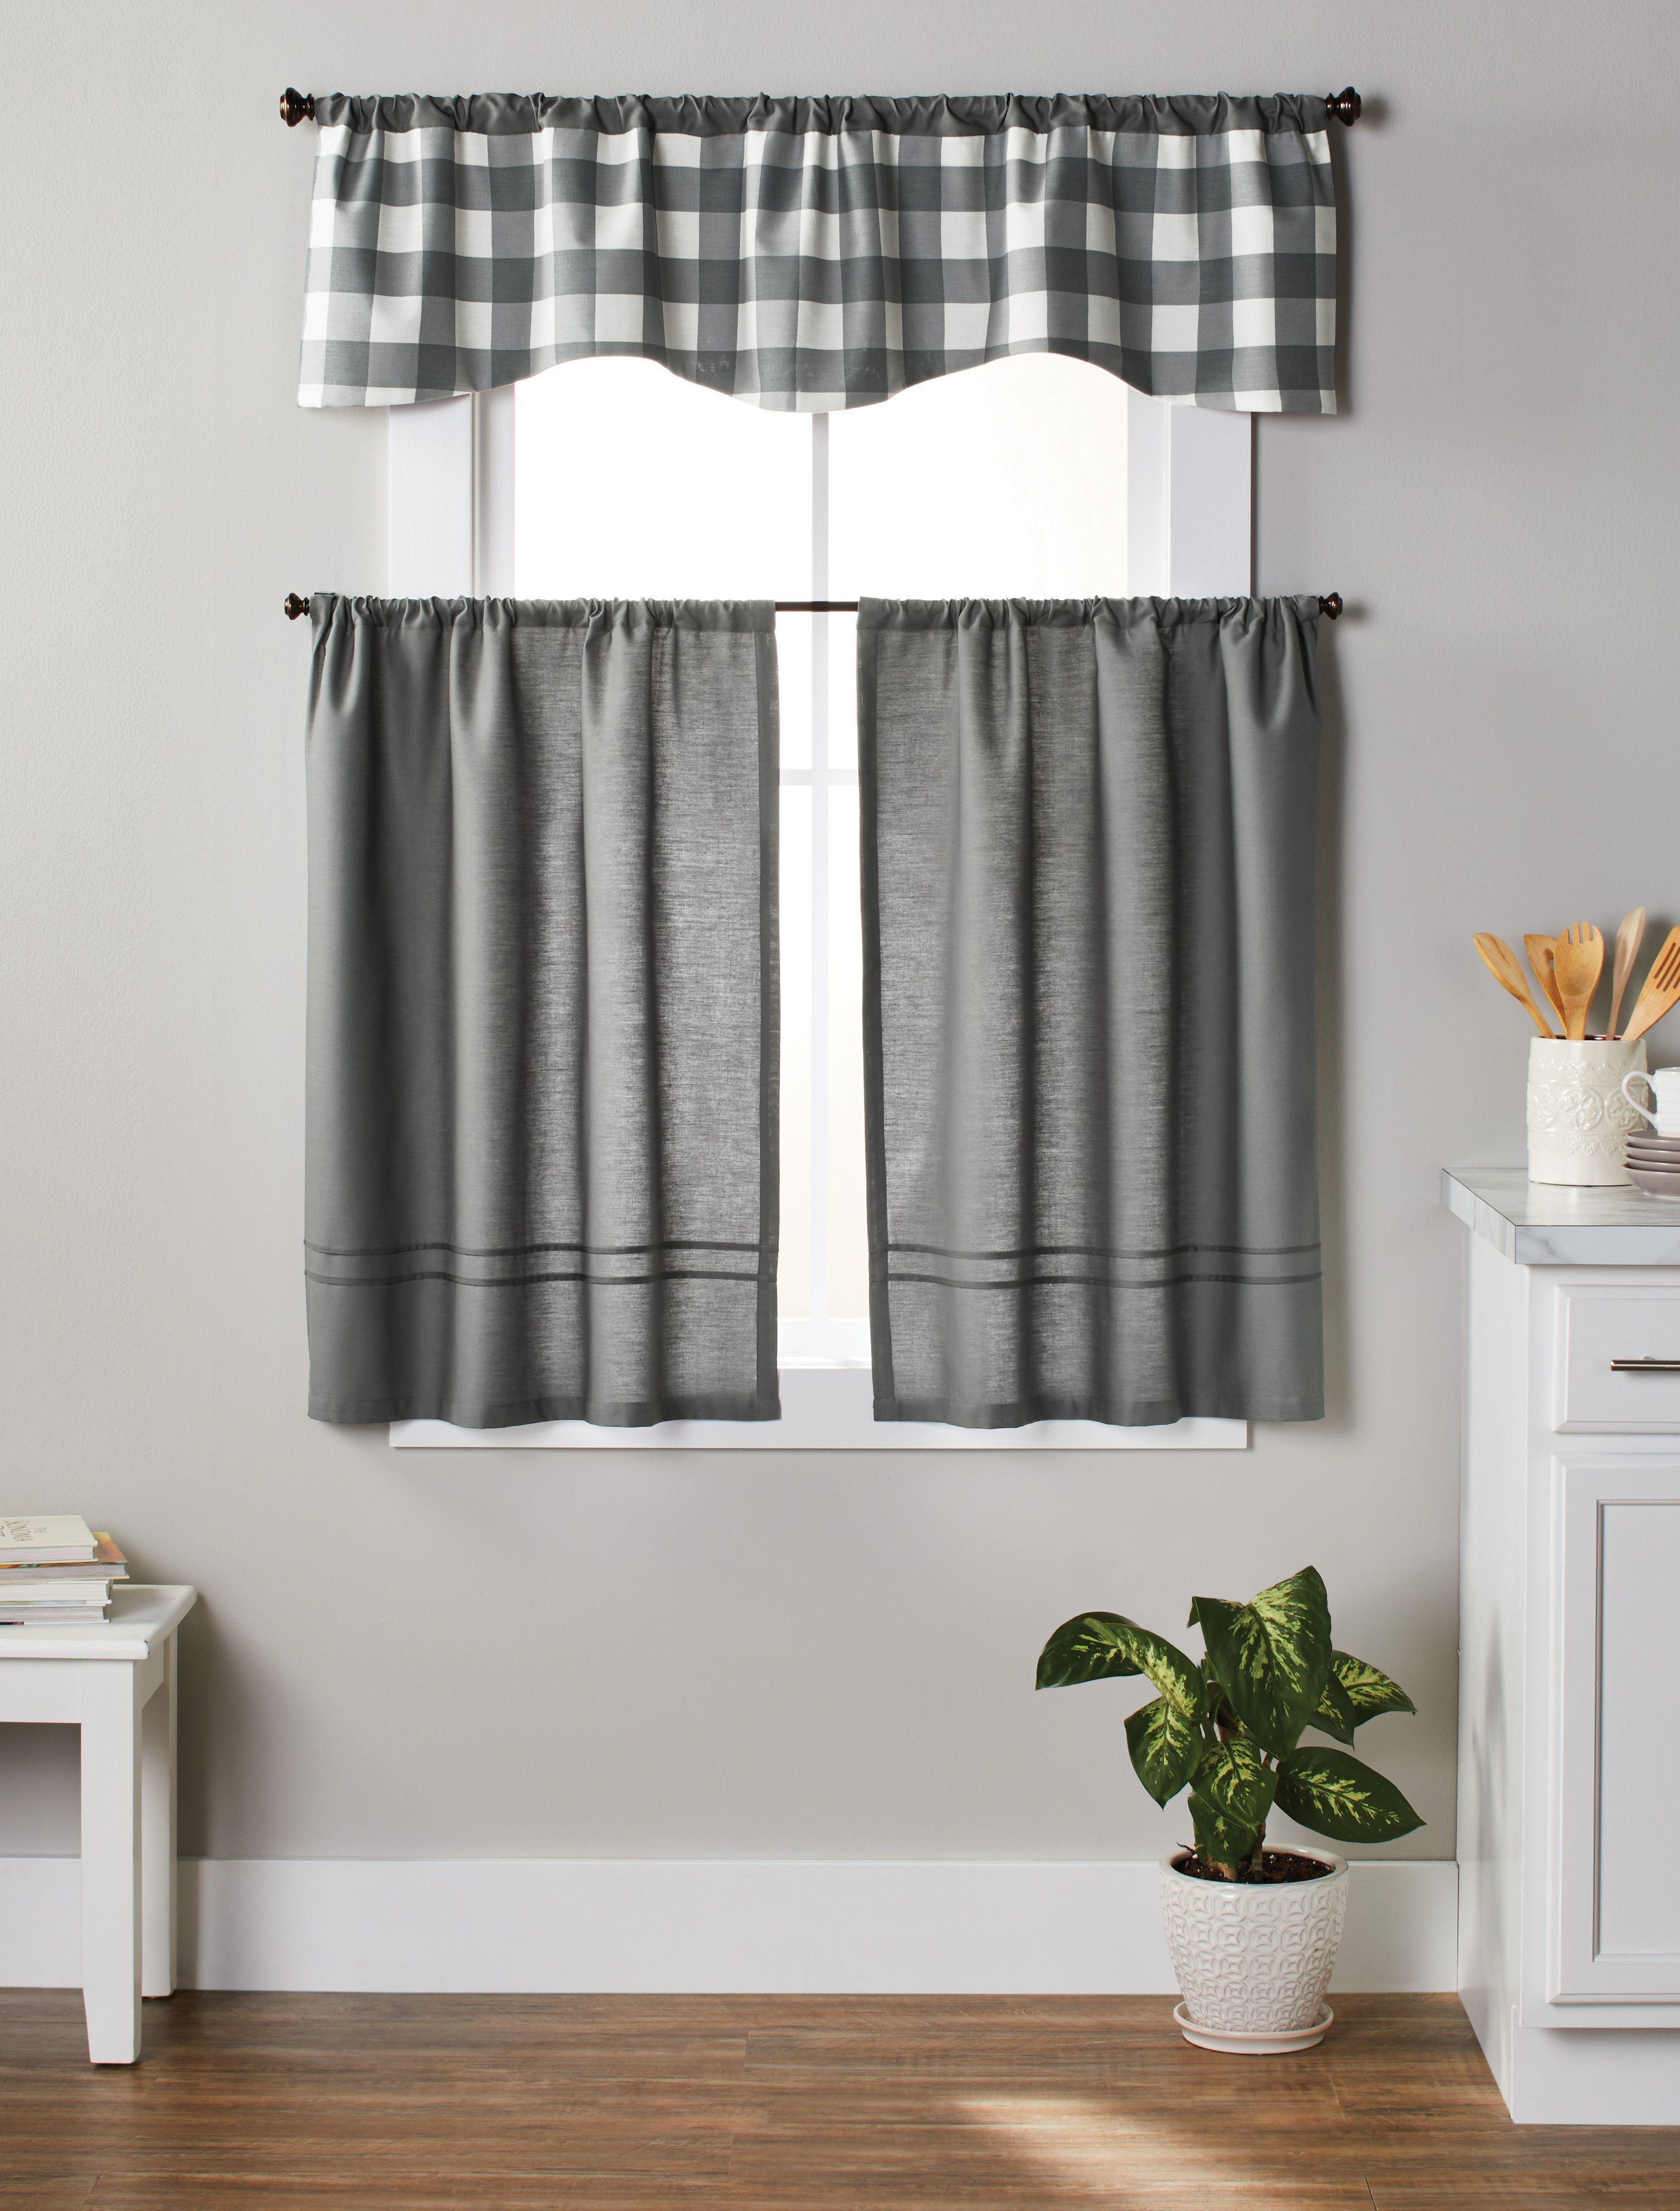 c793174a525d8810e8441b42487ecd4b - Better Homes And Gardens Cafe Kitchen Curtain Set